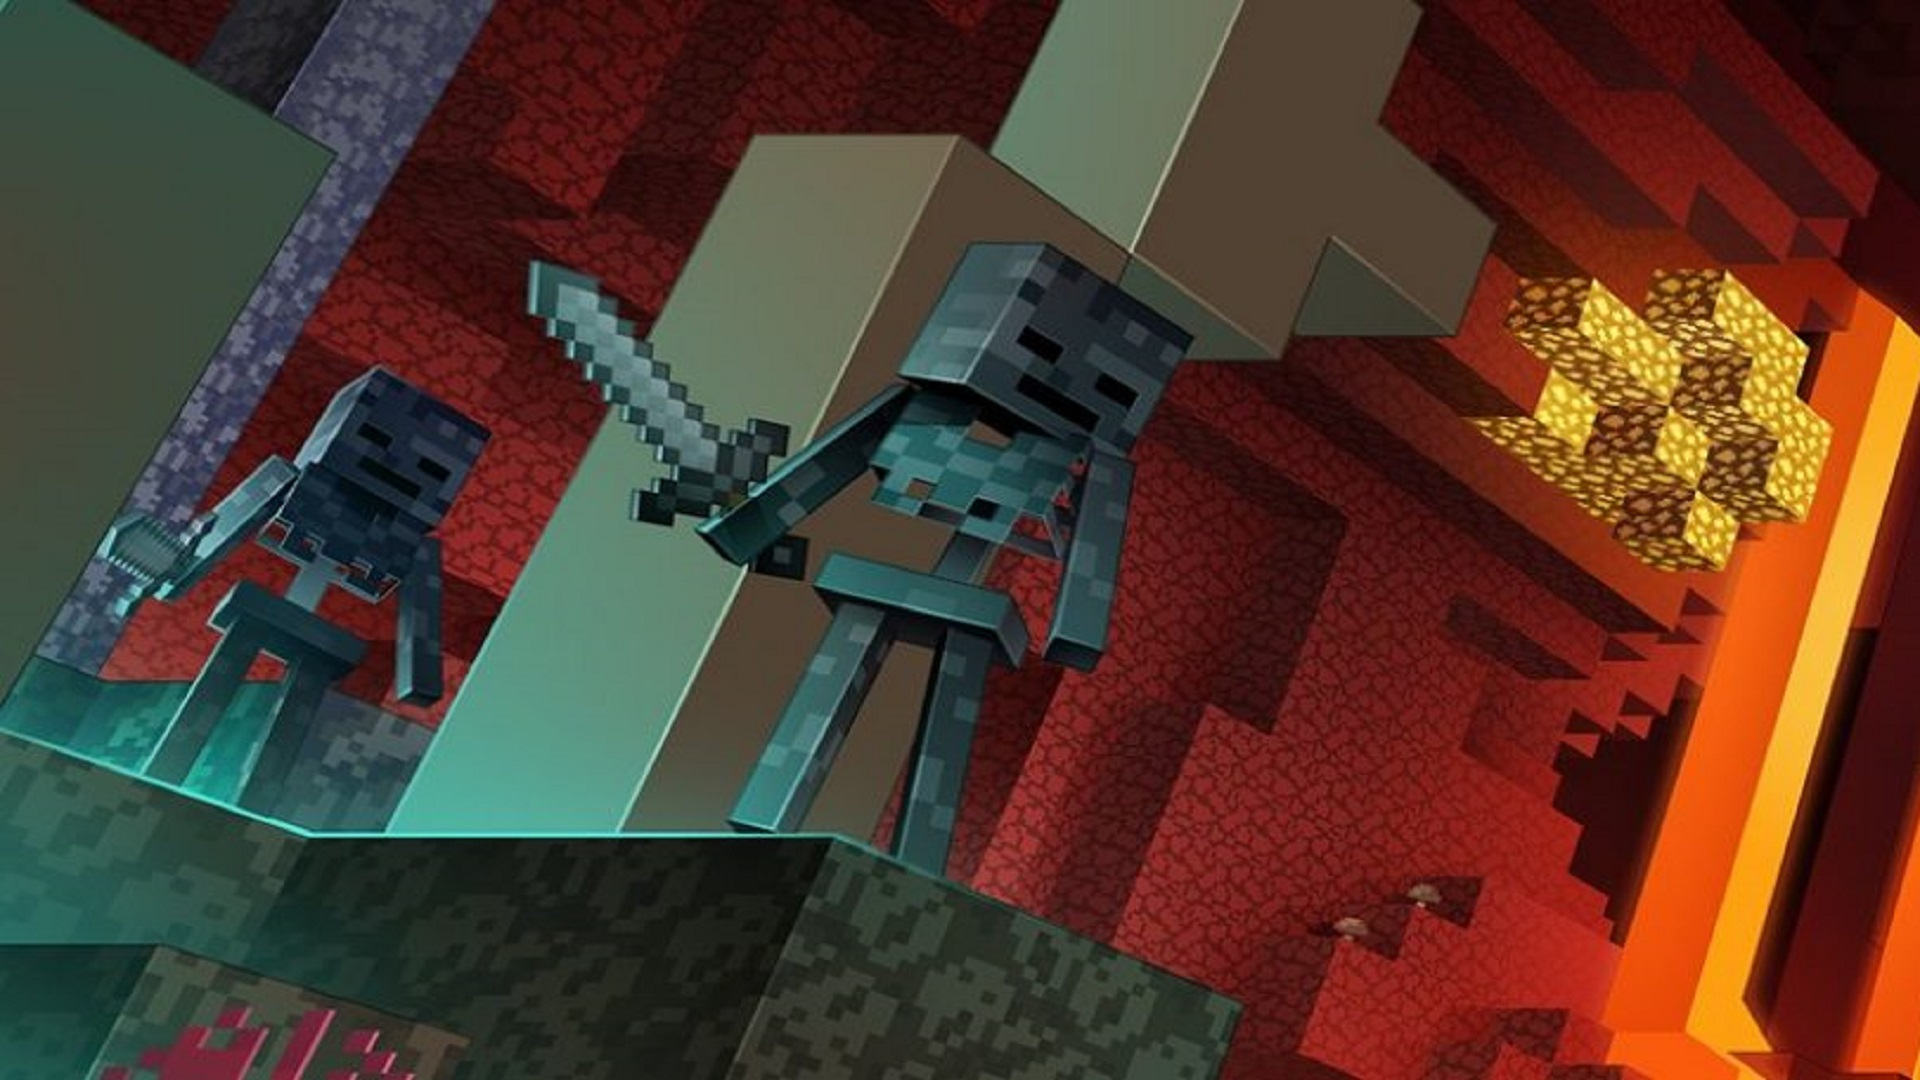 Minecraft S Next Big Update Takes You On A New Adventure In The Fiery Dimension On June 23 Gamesradar